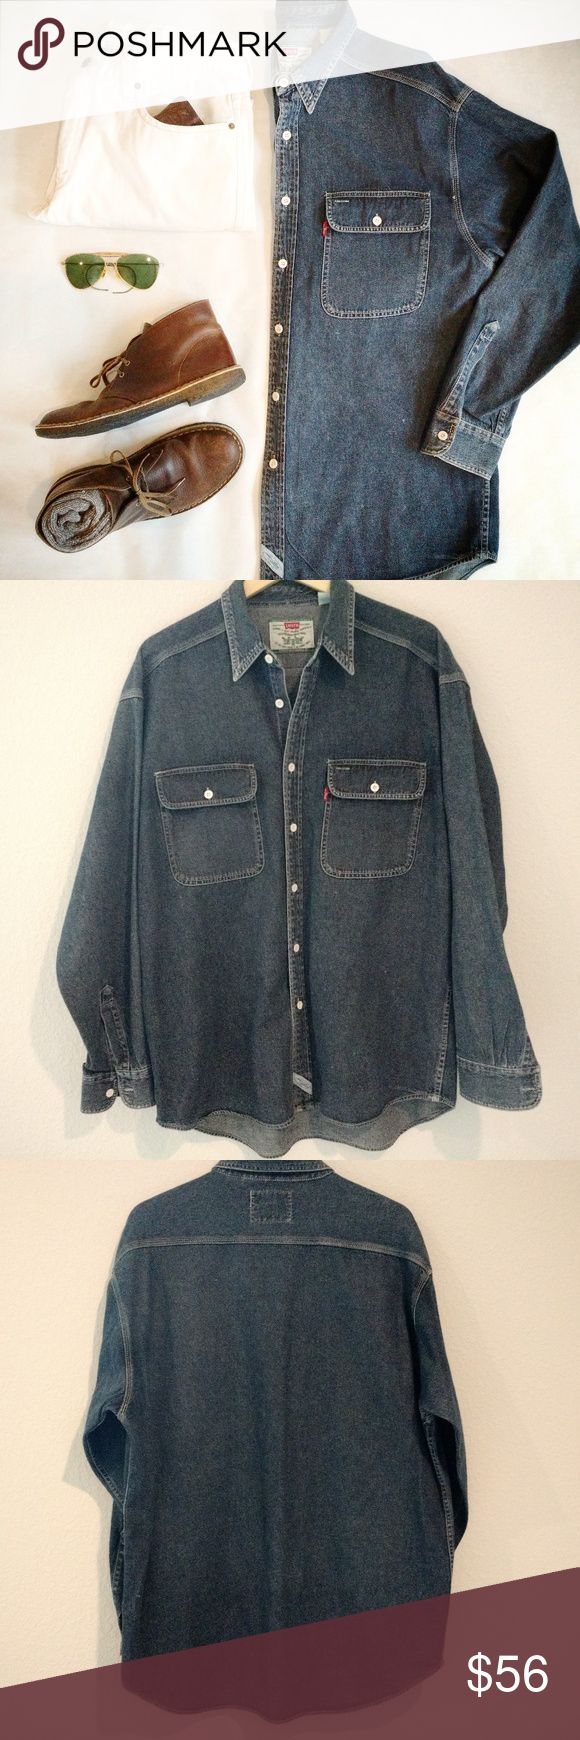 """LEVI'S Vintage Dark Blue Denim Big Shirt sz L Levi Strauss doesn't make shirts like this anymore. Stunning dark denim, this shirt is in mint condition. Freshly laundered and pressed. It's a men's large, and would also fit like a women's XL. Chest 50"""" around, length 29"""" from collar to hem along the back. 100% cotton. White buttons.  A true basic. You'll wear this Levi's shirt year around and it will last forever. Levi's Jeans"""